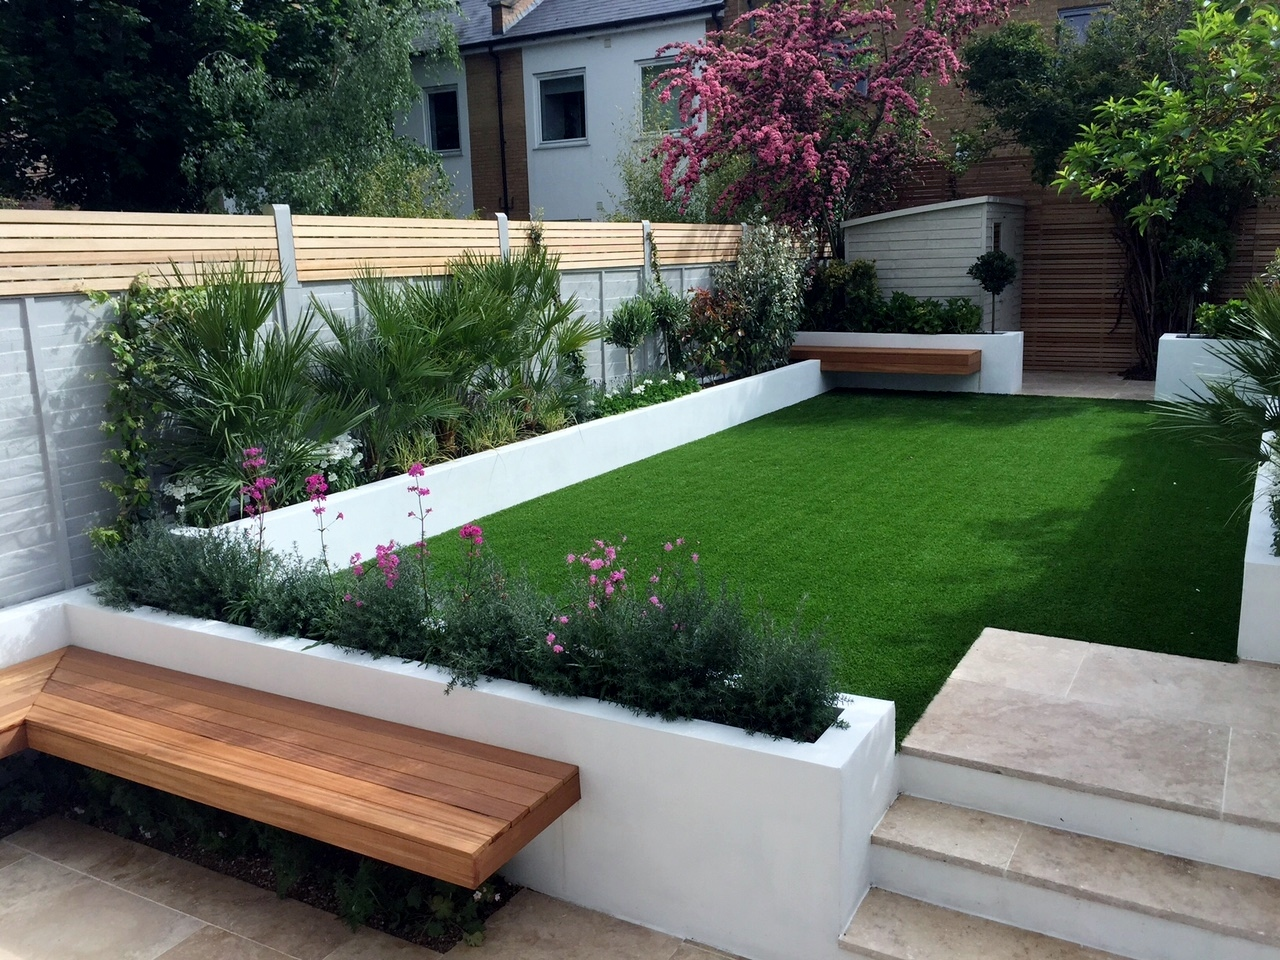 Modern garden design ideas Fulham Chelsea Battersea ... on Small Backyard Patio Designs id=82448